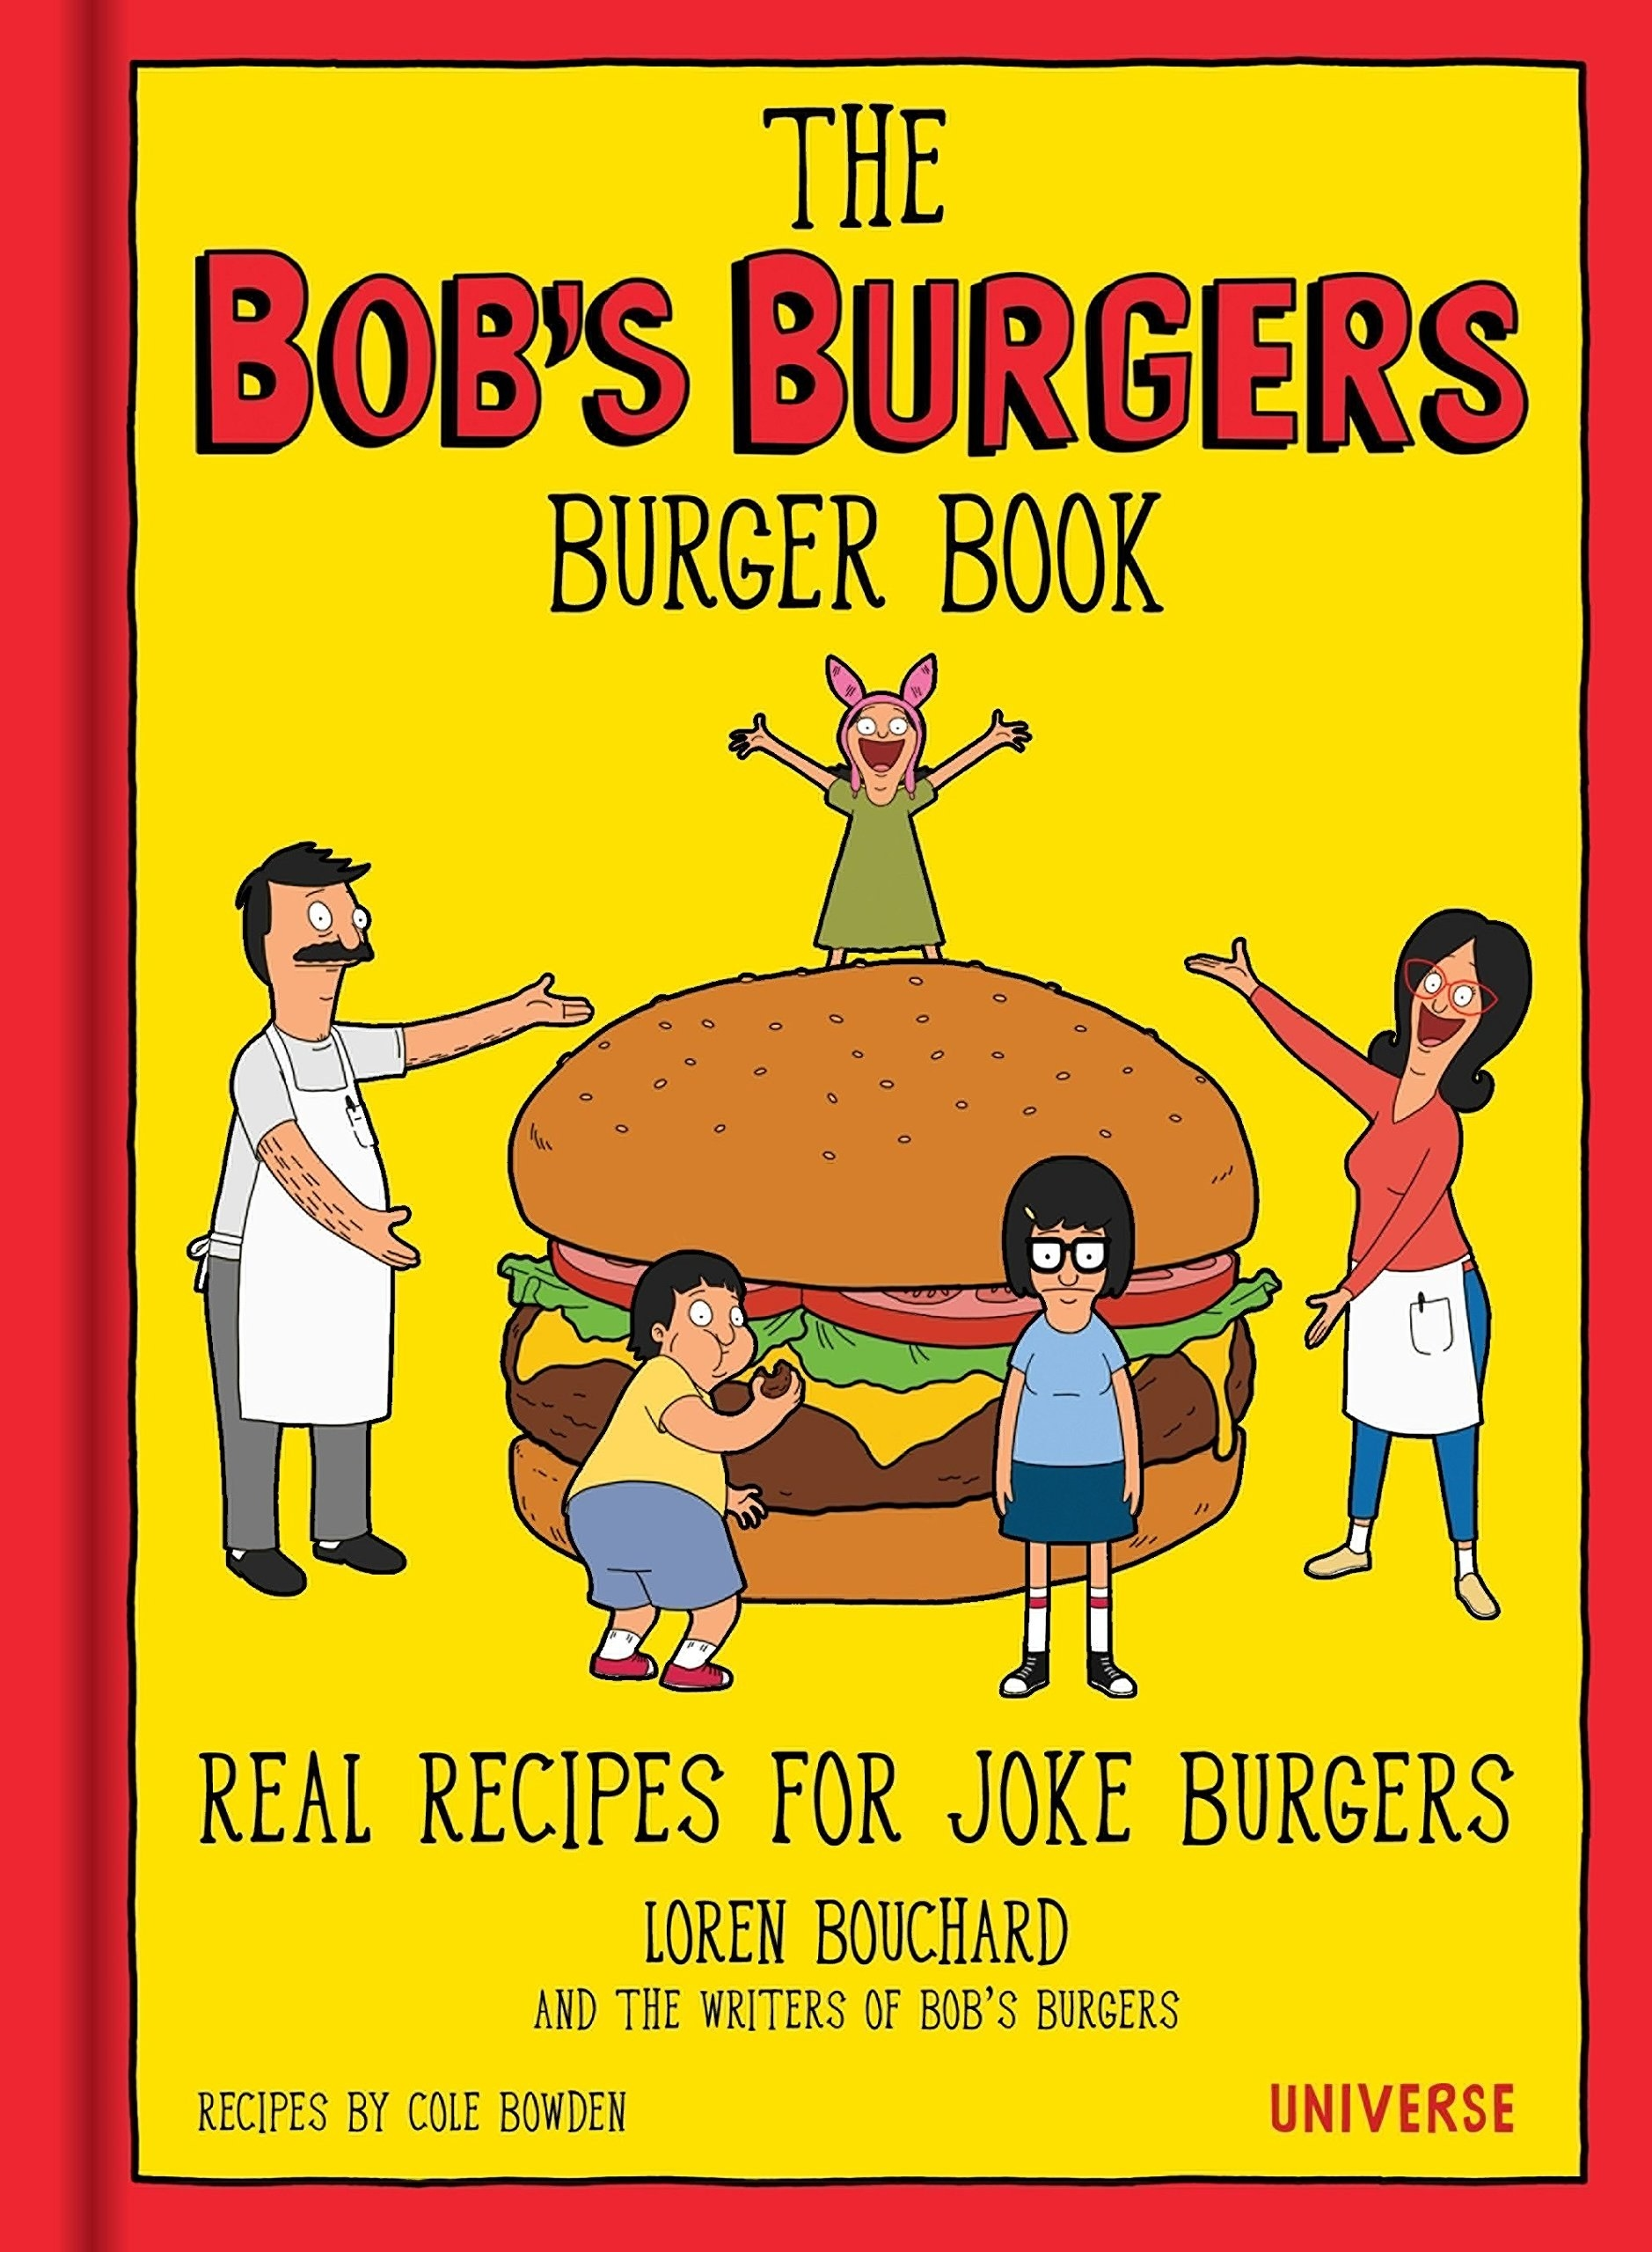 The Bob's Burgers Burger Book: Real Recipes for Joke Burgers.